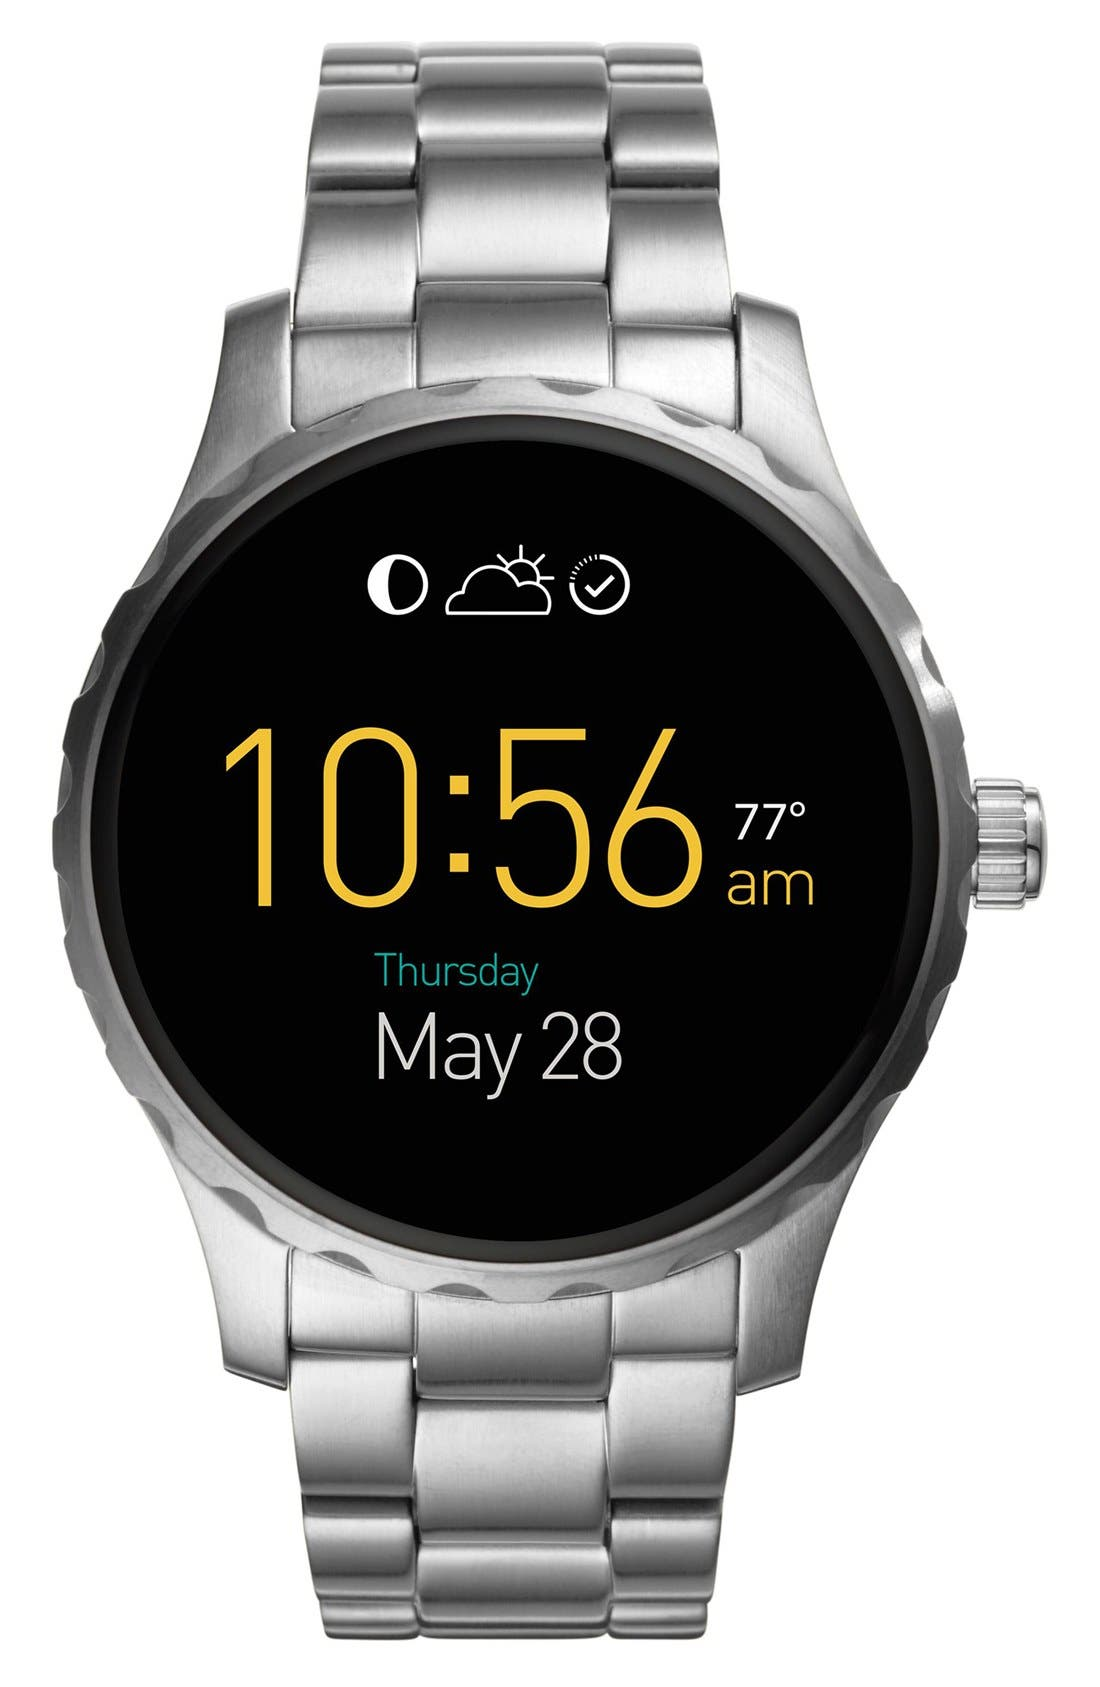 Fossil Q Marshal Digital Smart Bracelet Watch, 45mm